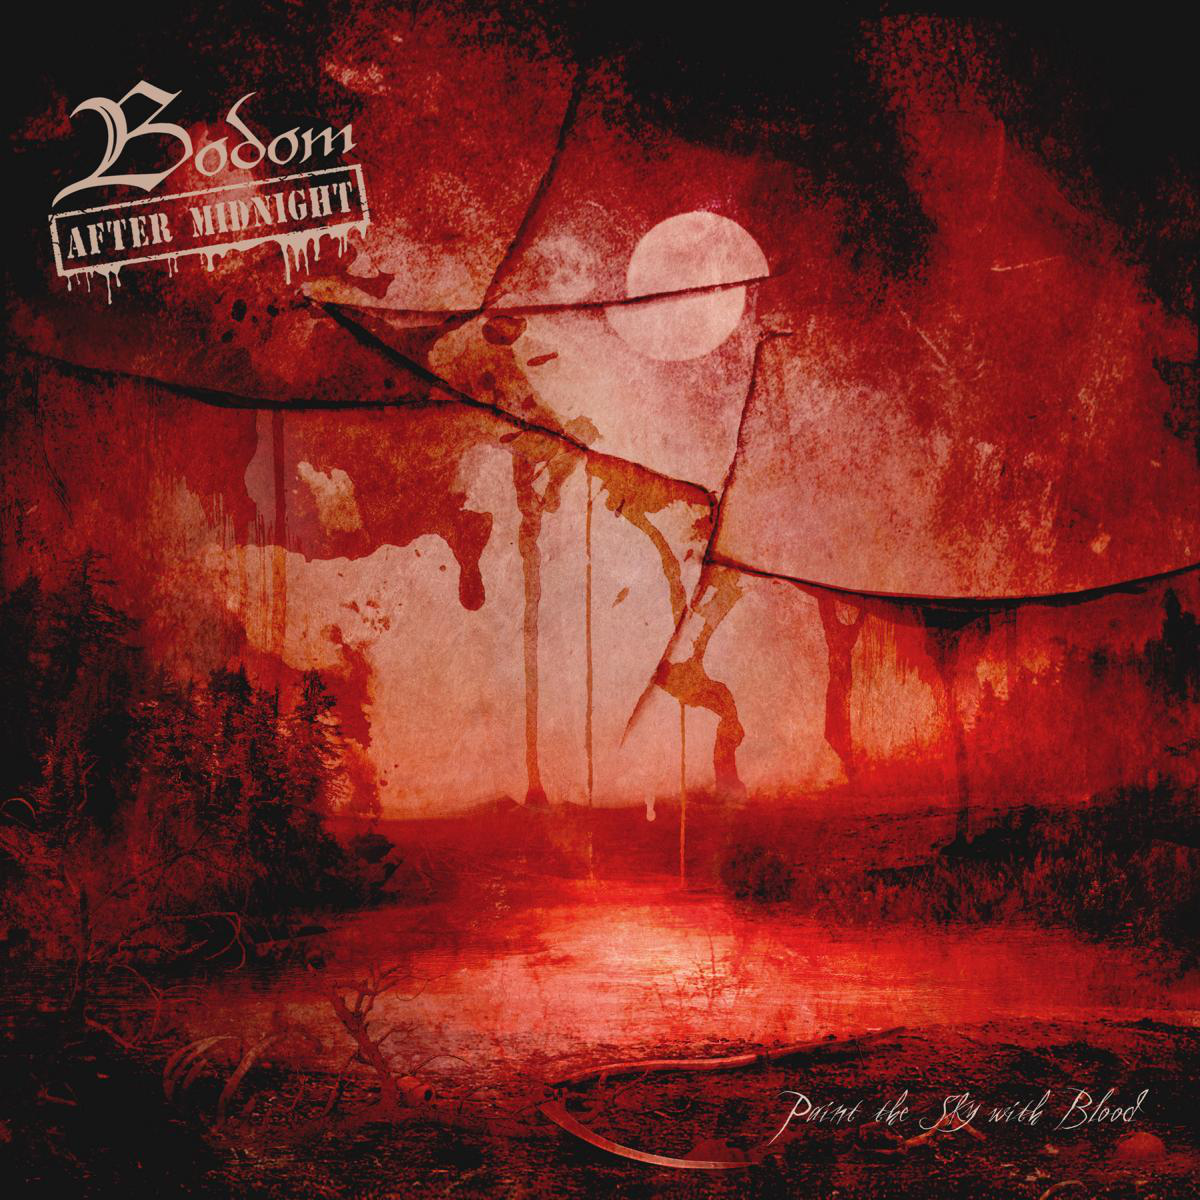 Bodom After Midnight – Paint The Sky With Blood